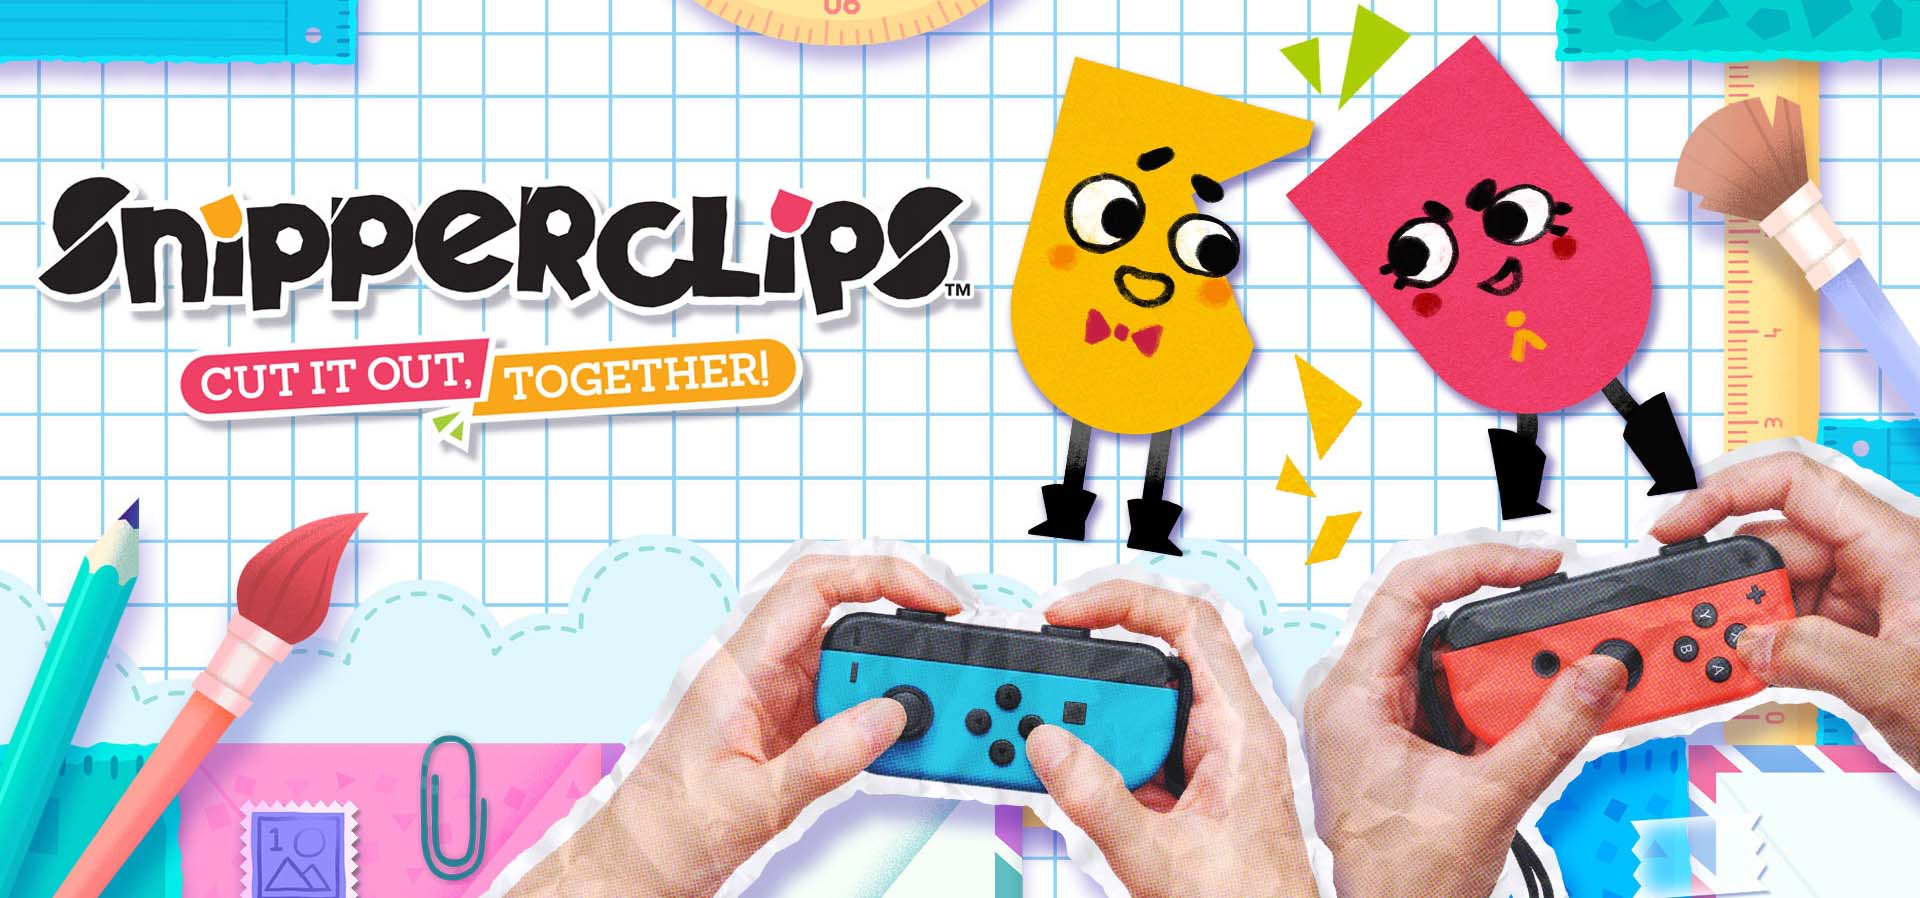 Snipperclips Cut it out together Nintendo Switch